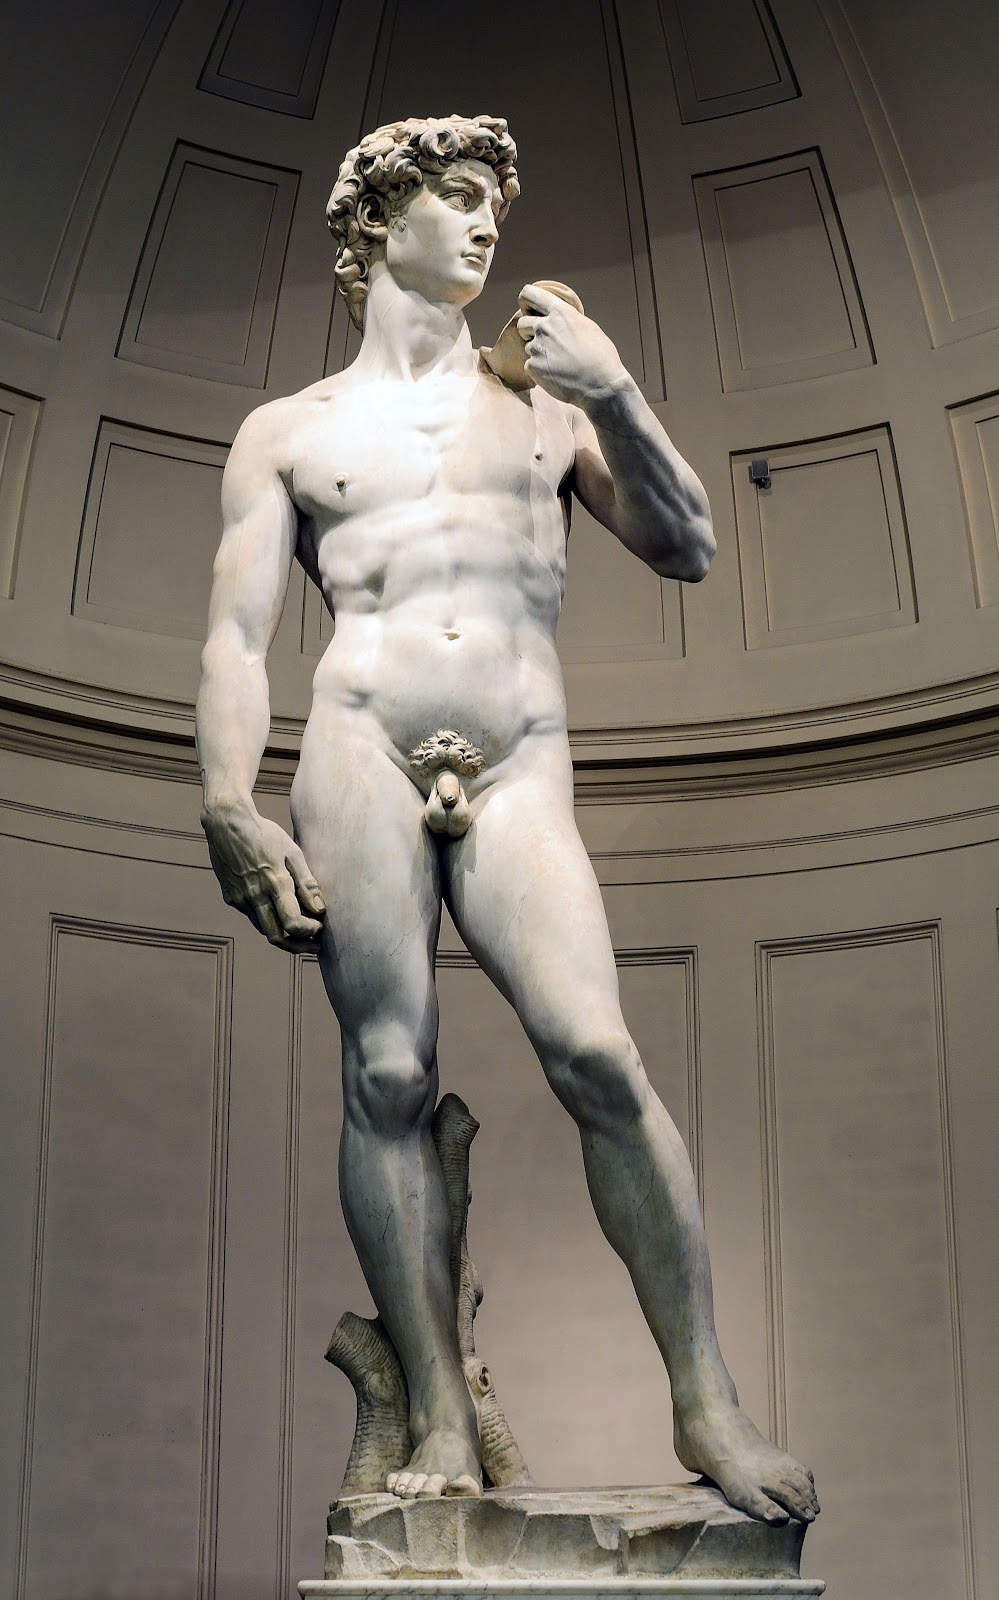 Michelangelo's The David, a towering marble sculpture of a nude David before his battle with Goliath.